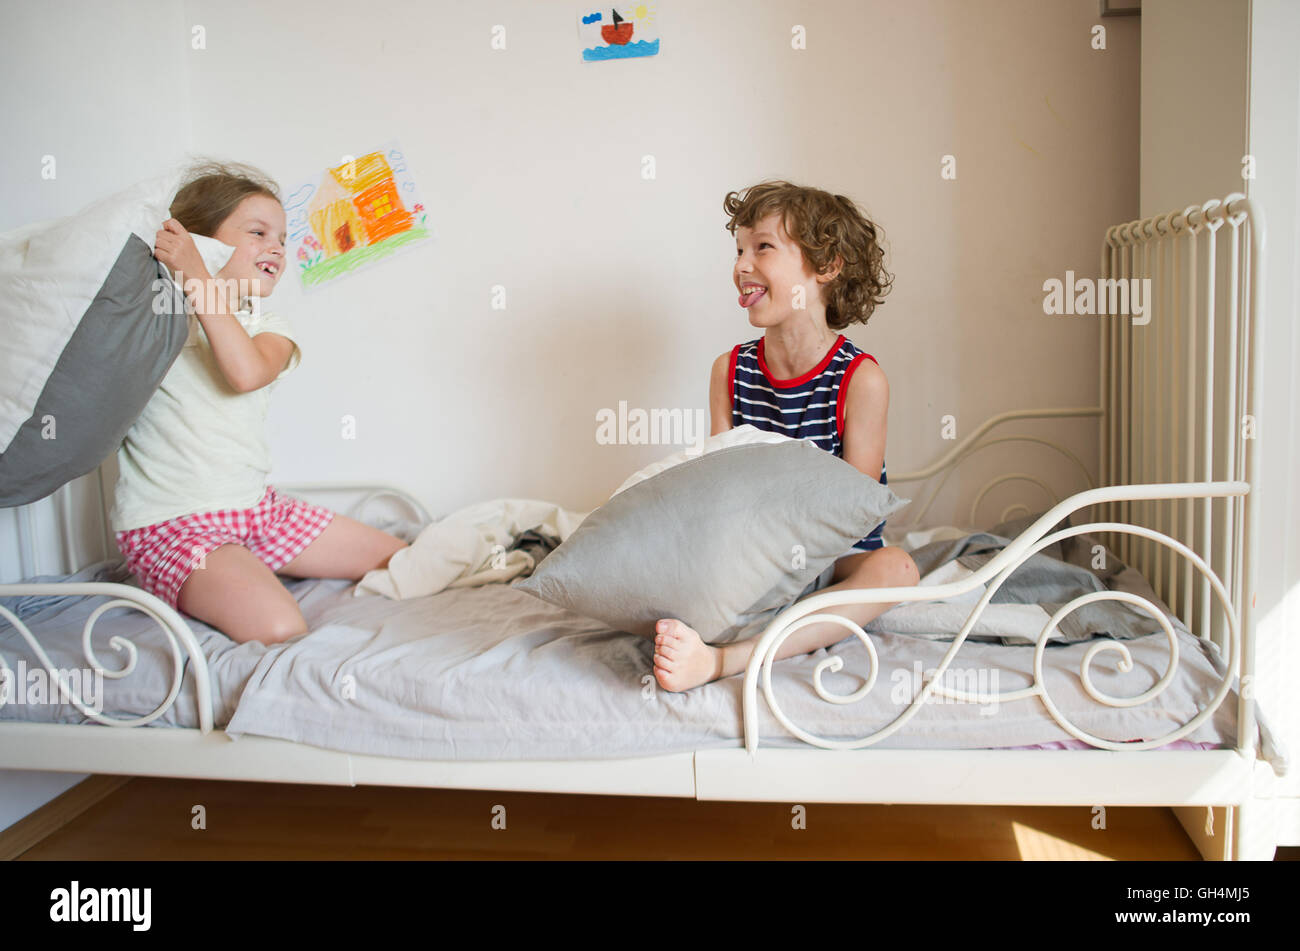 Brother and sister sit on the bed in the bedroom They fight